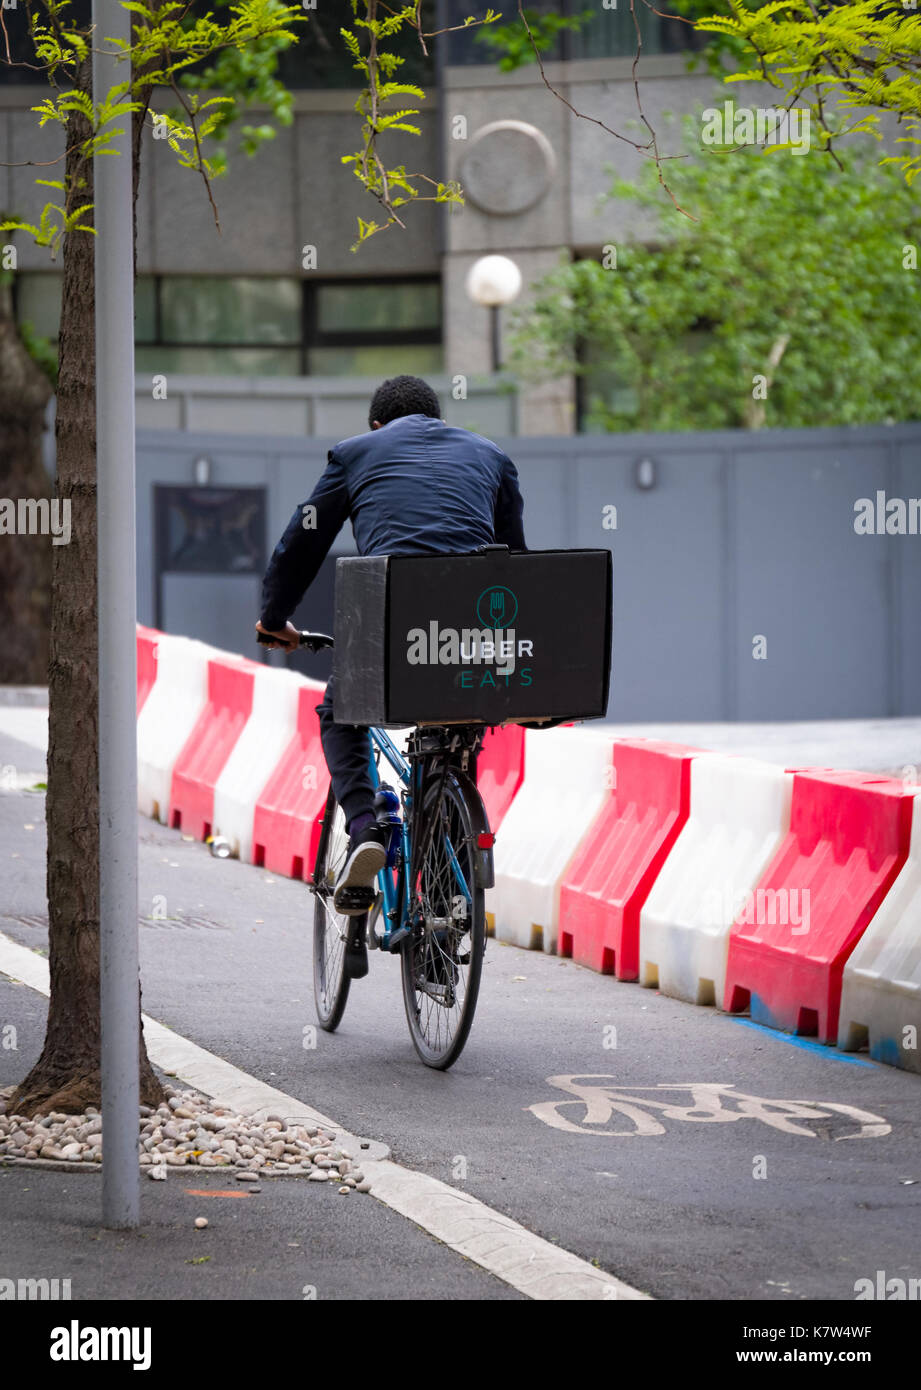 UberEATS cycle delivery courier in London, Ubereats is a take away food service which can be ordered from a Smartphone Stock Photo